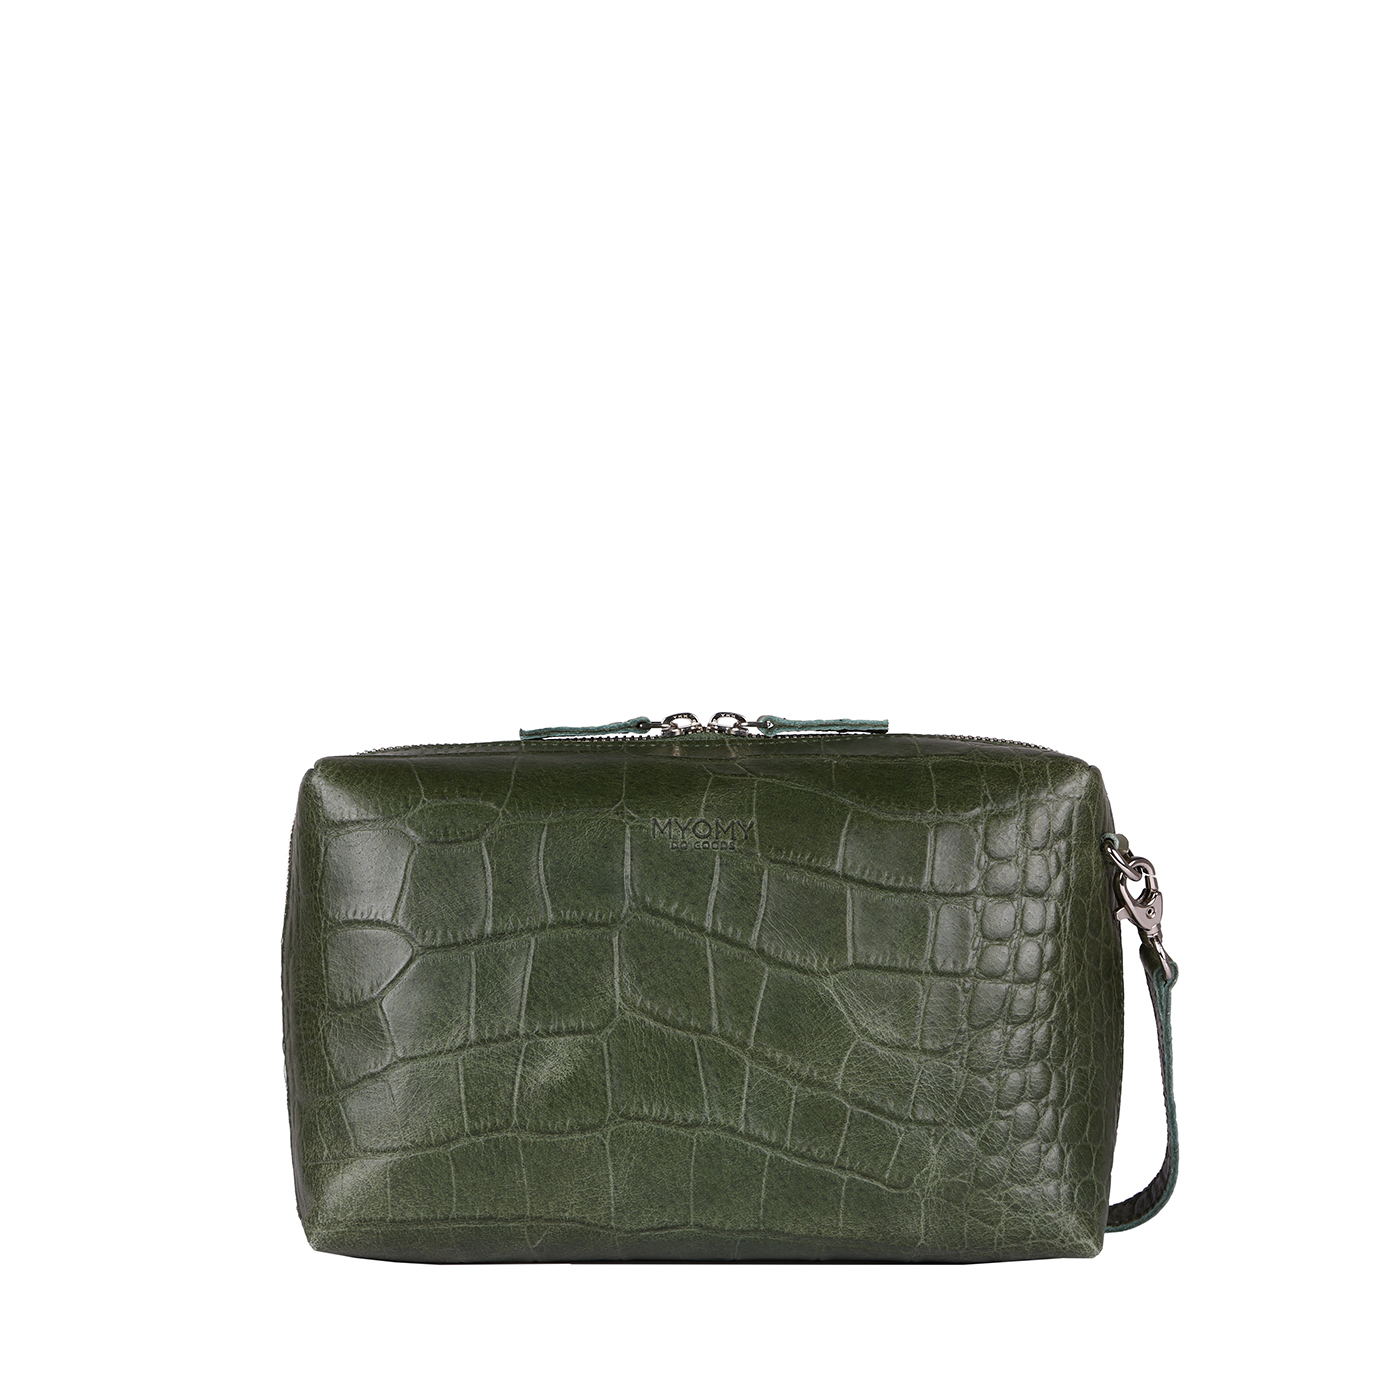 MY BOXY BAG Handbag – croco vetiver green